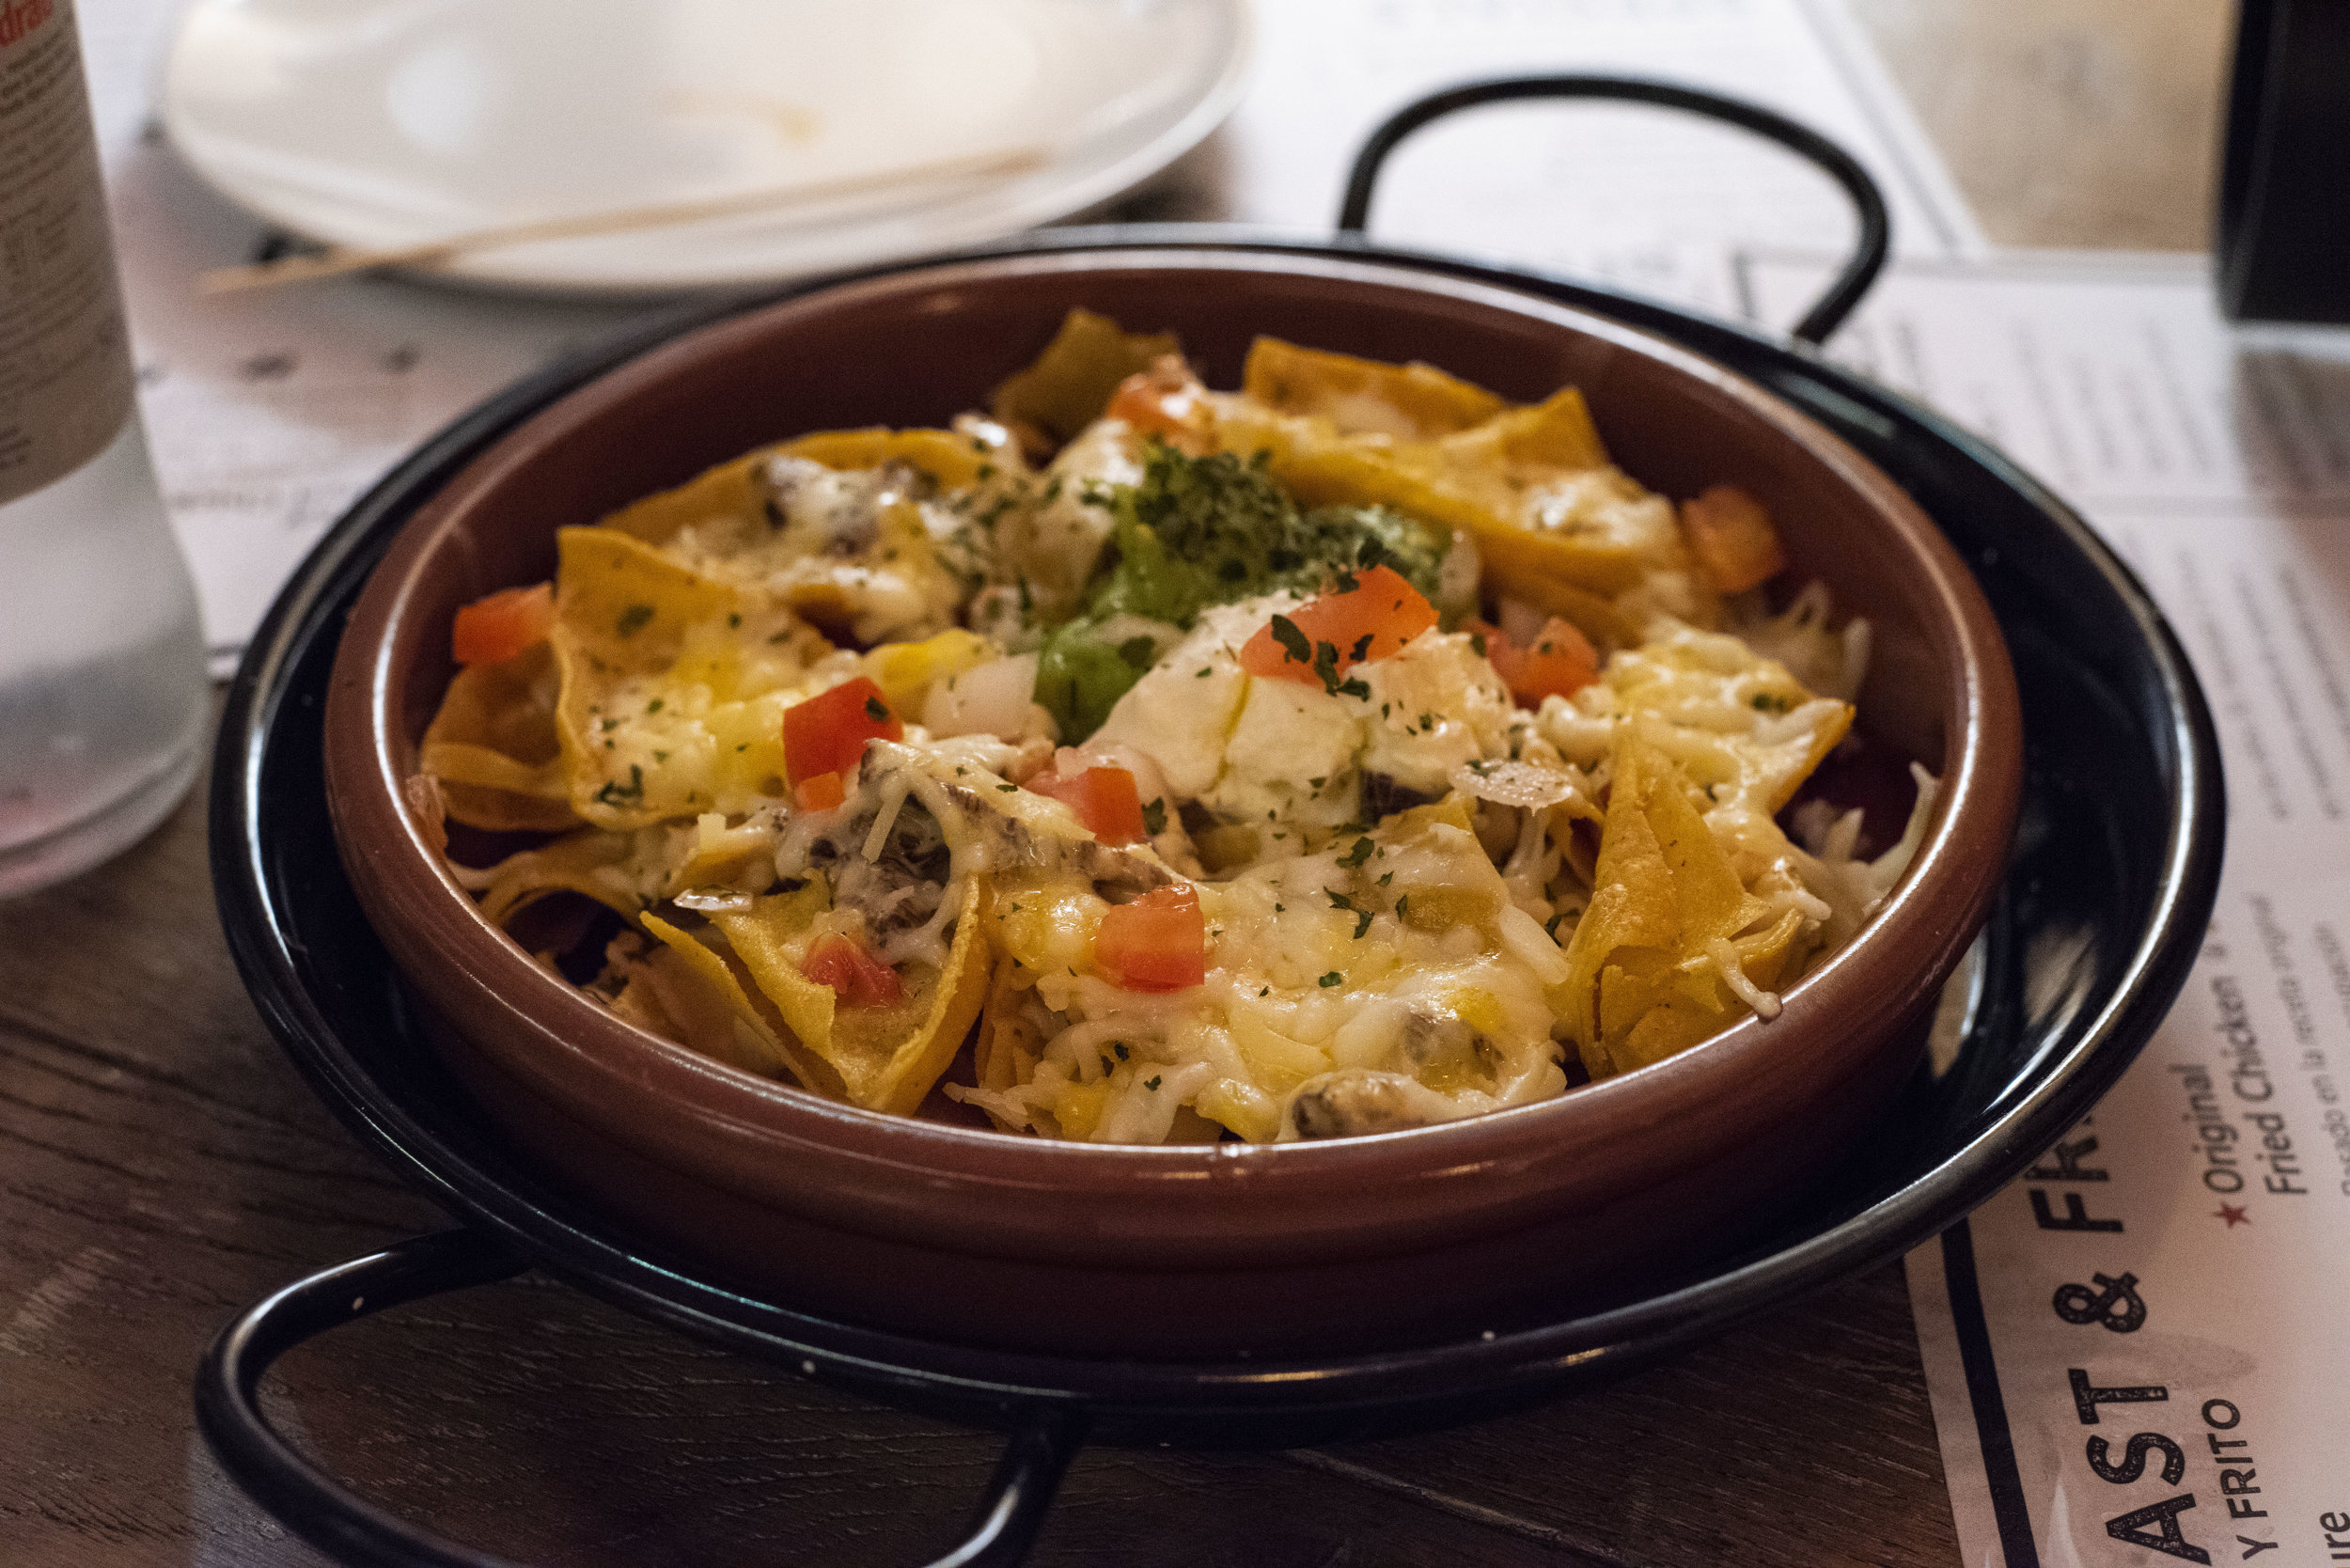 Nachos at Rooster, Barcelona